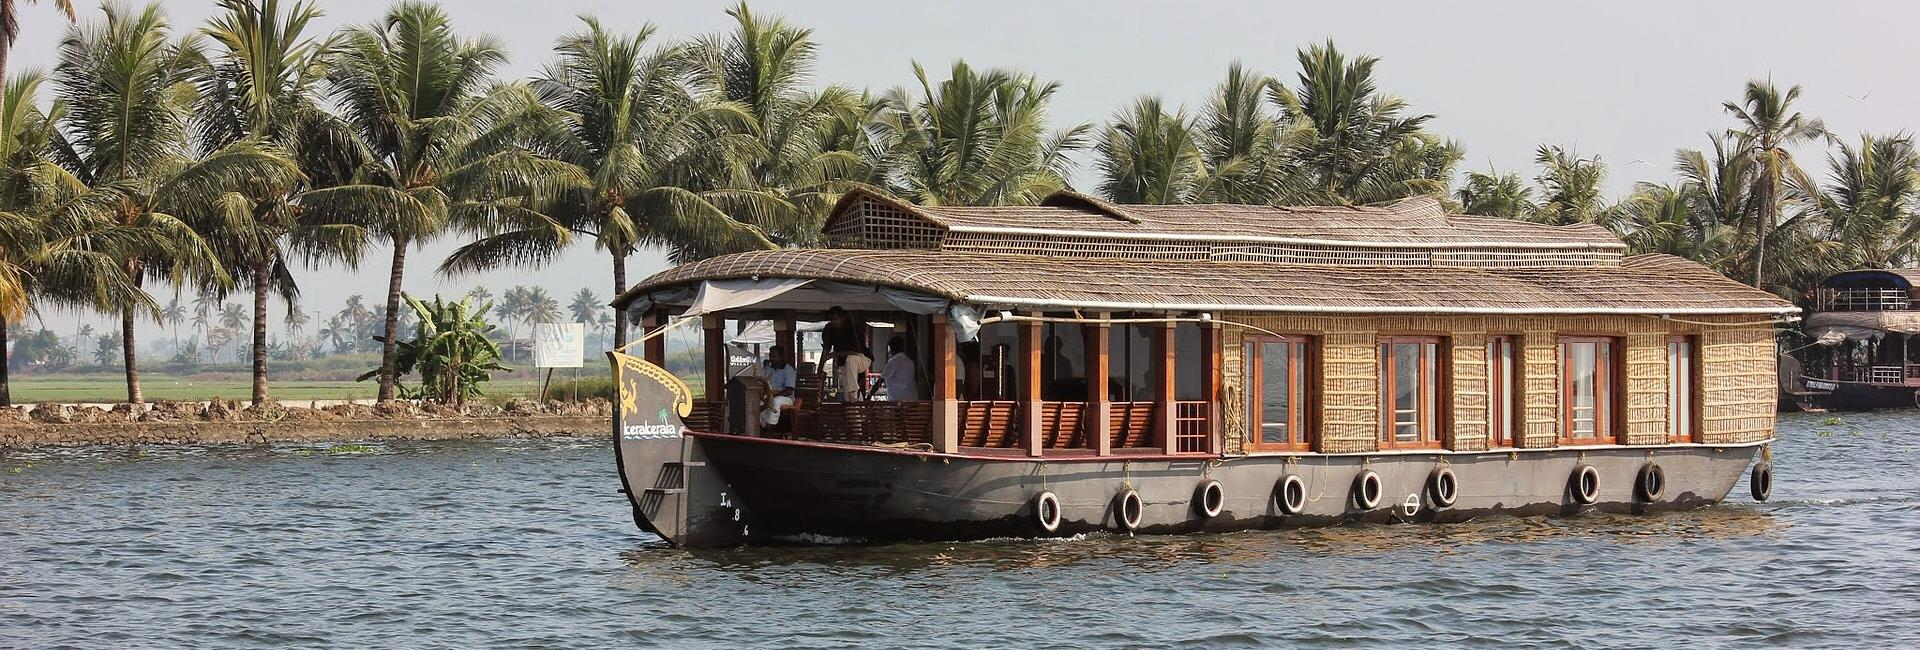 Kerala Tour Packages Tour Packages in India